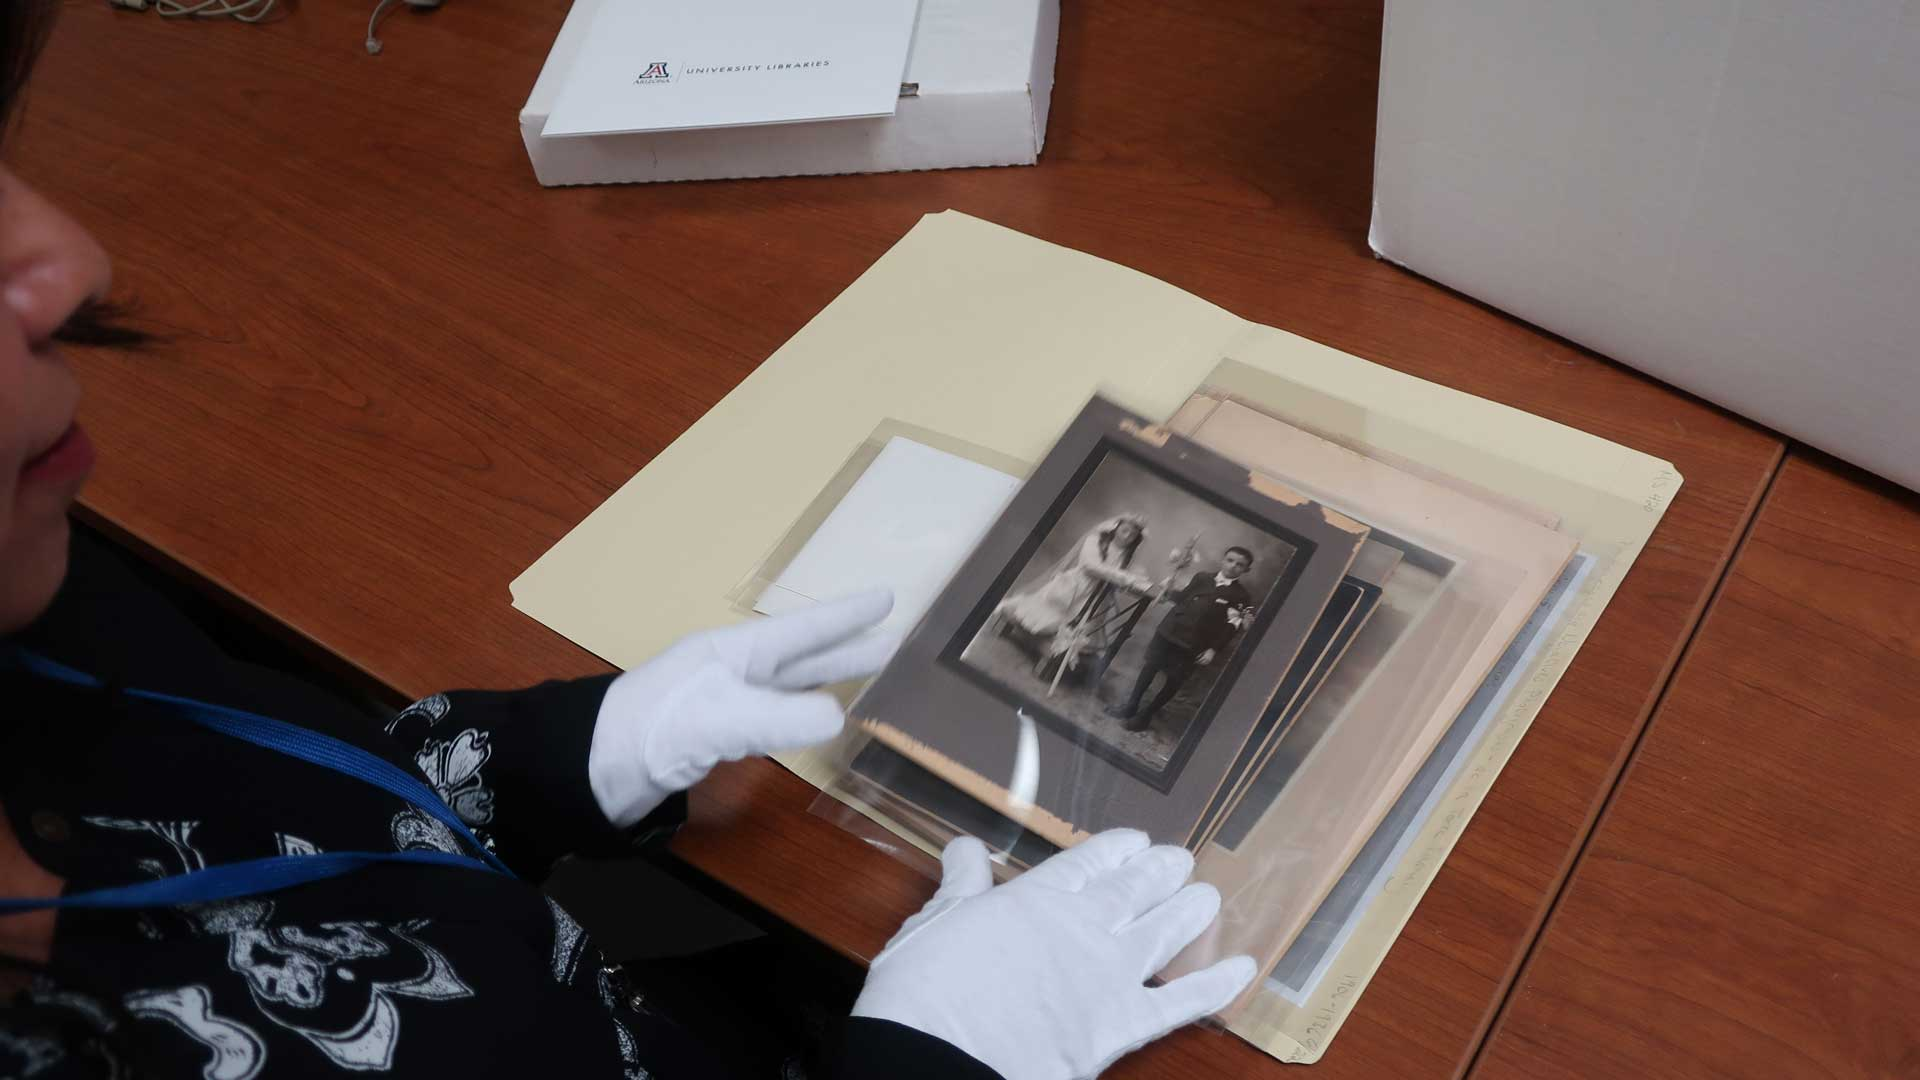 Verónica Reyes-Escudero examines photos from the de la Torre family collection at UA Special Collections.